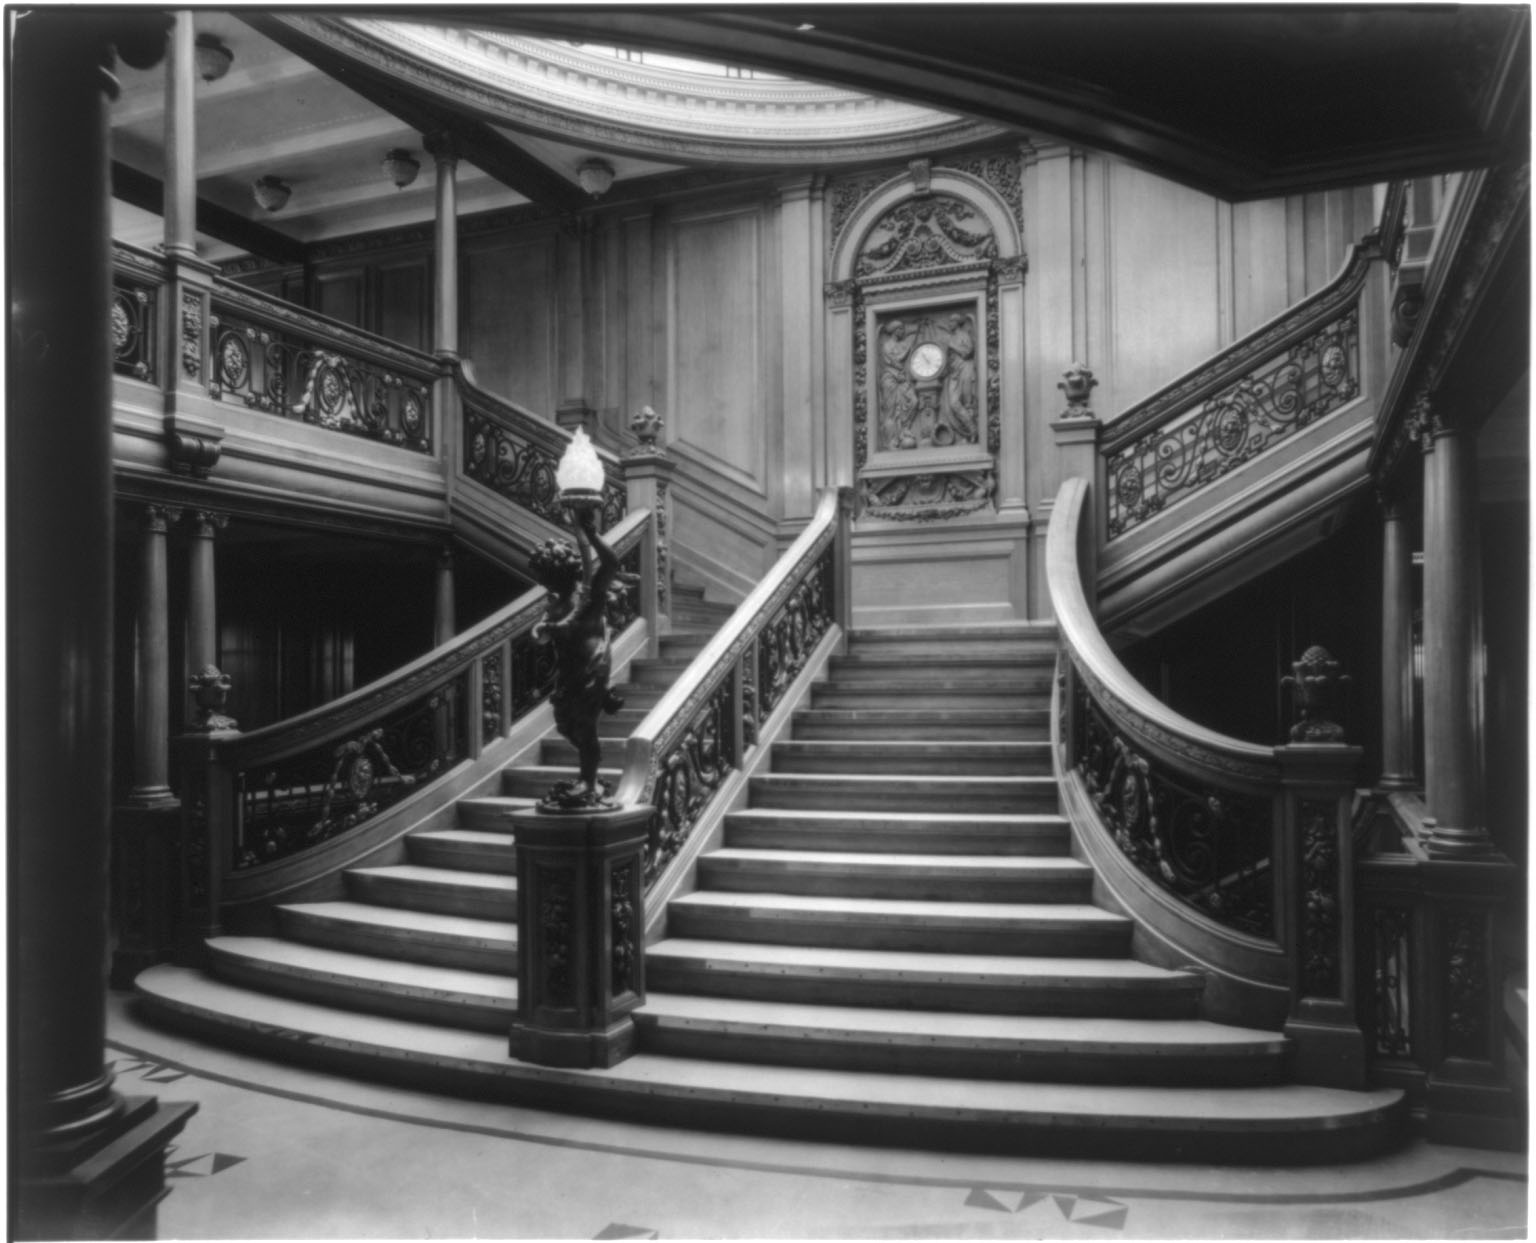 titanic grand staircase vi-#15